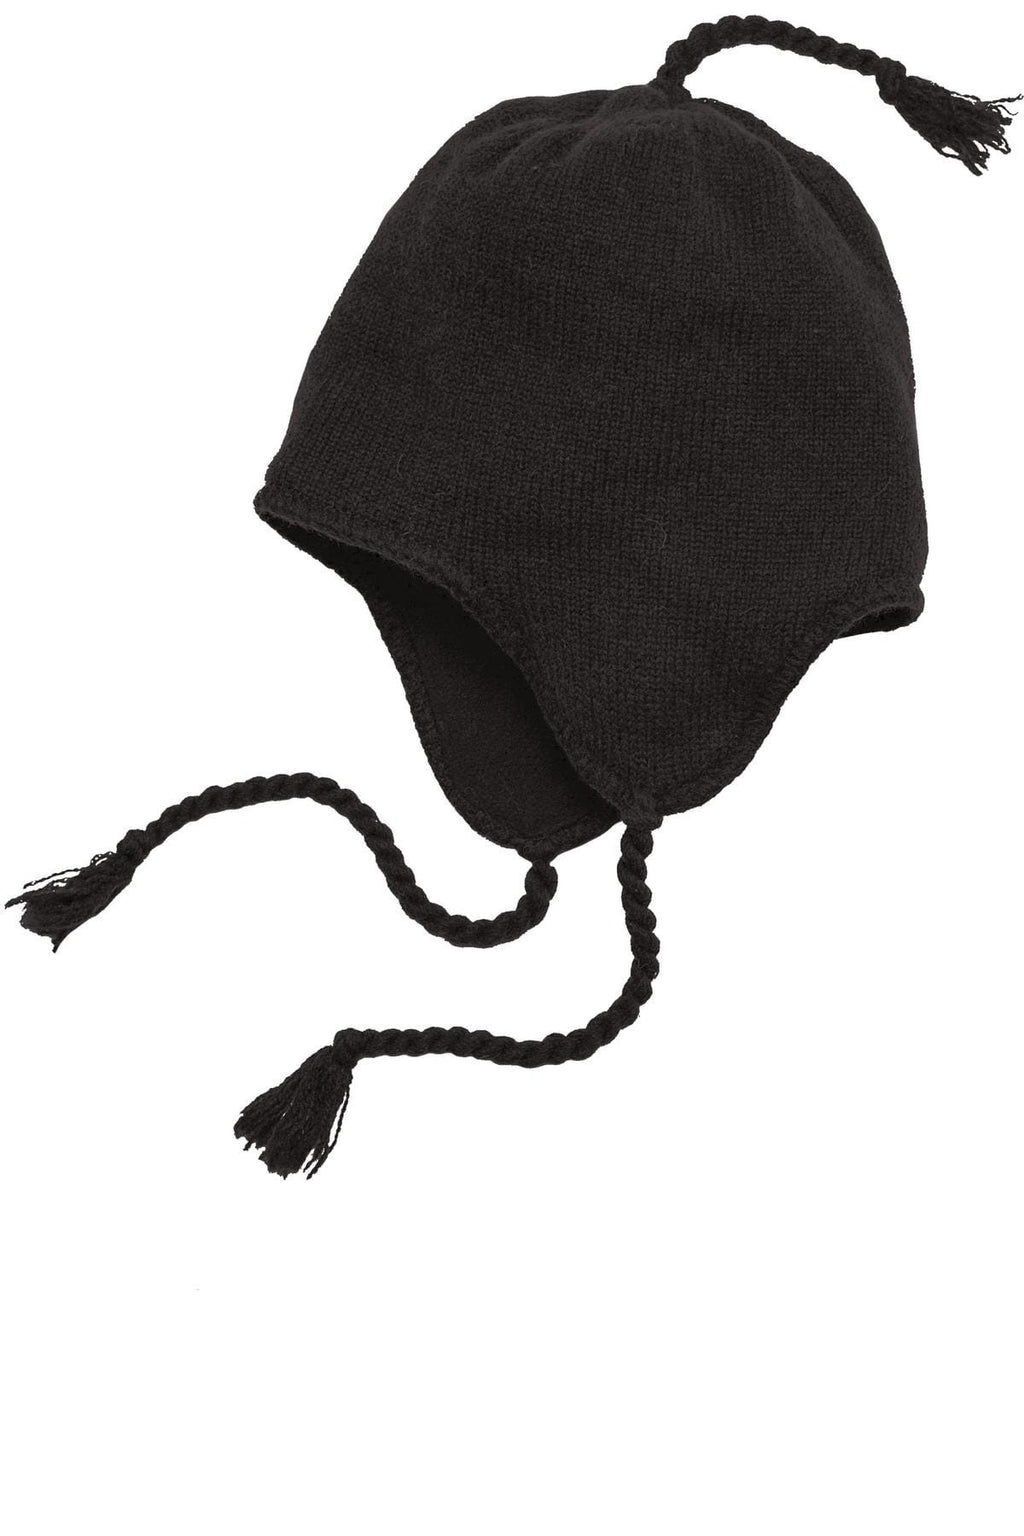 District Brand Knit Hat With Ear Flaps-1